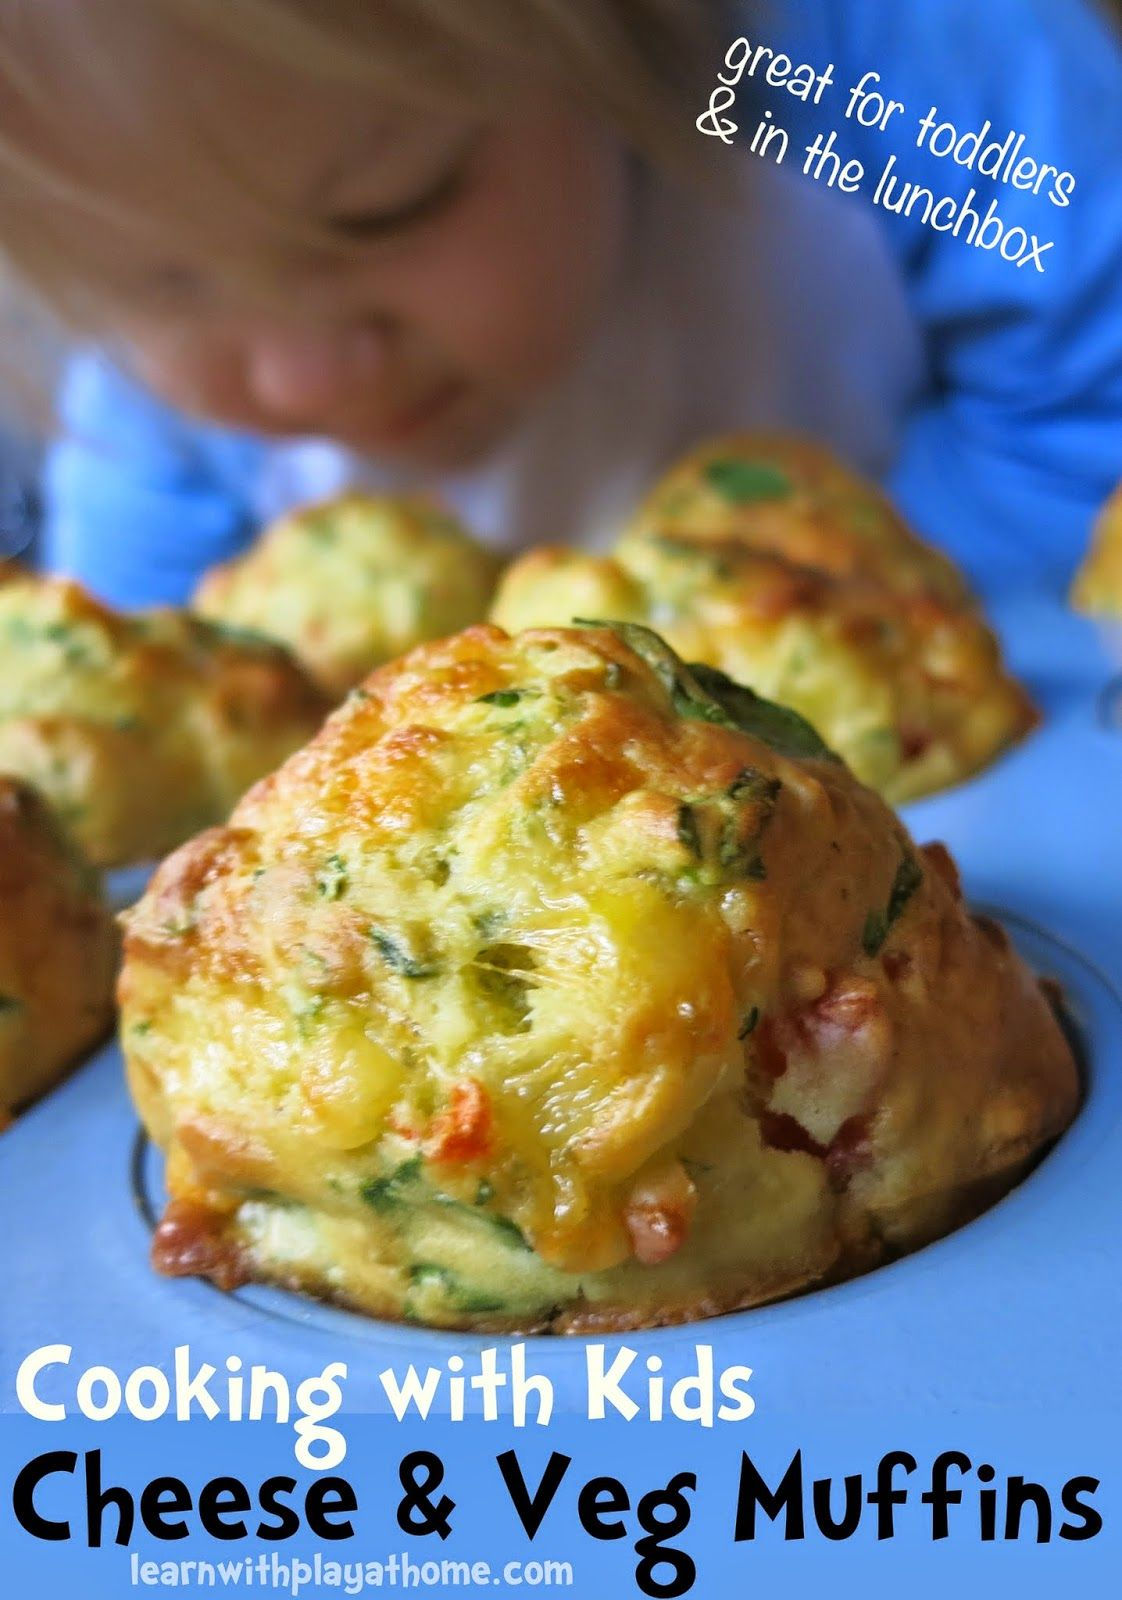 Cheese And Veg Muffins Cooking With Kids